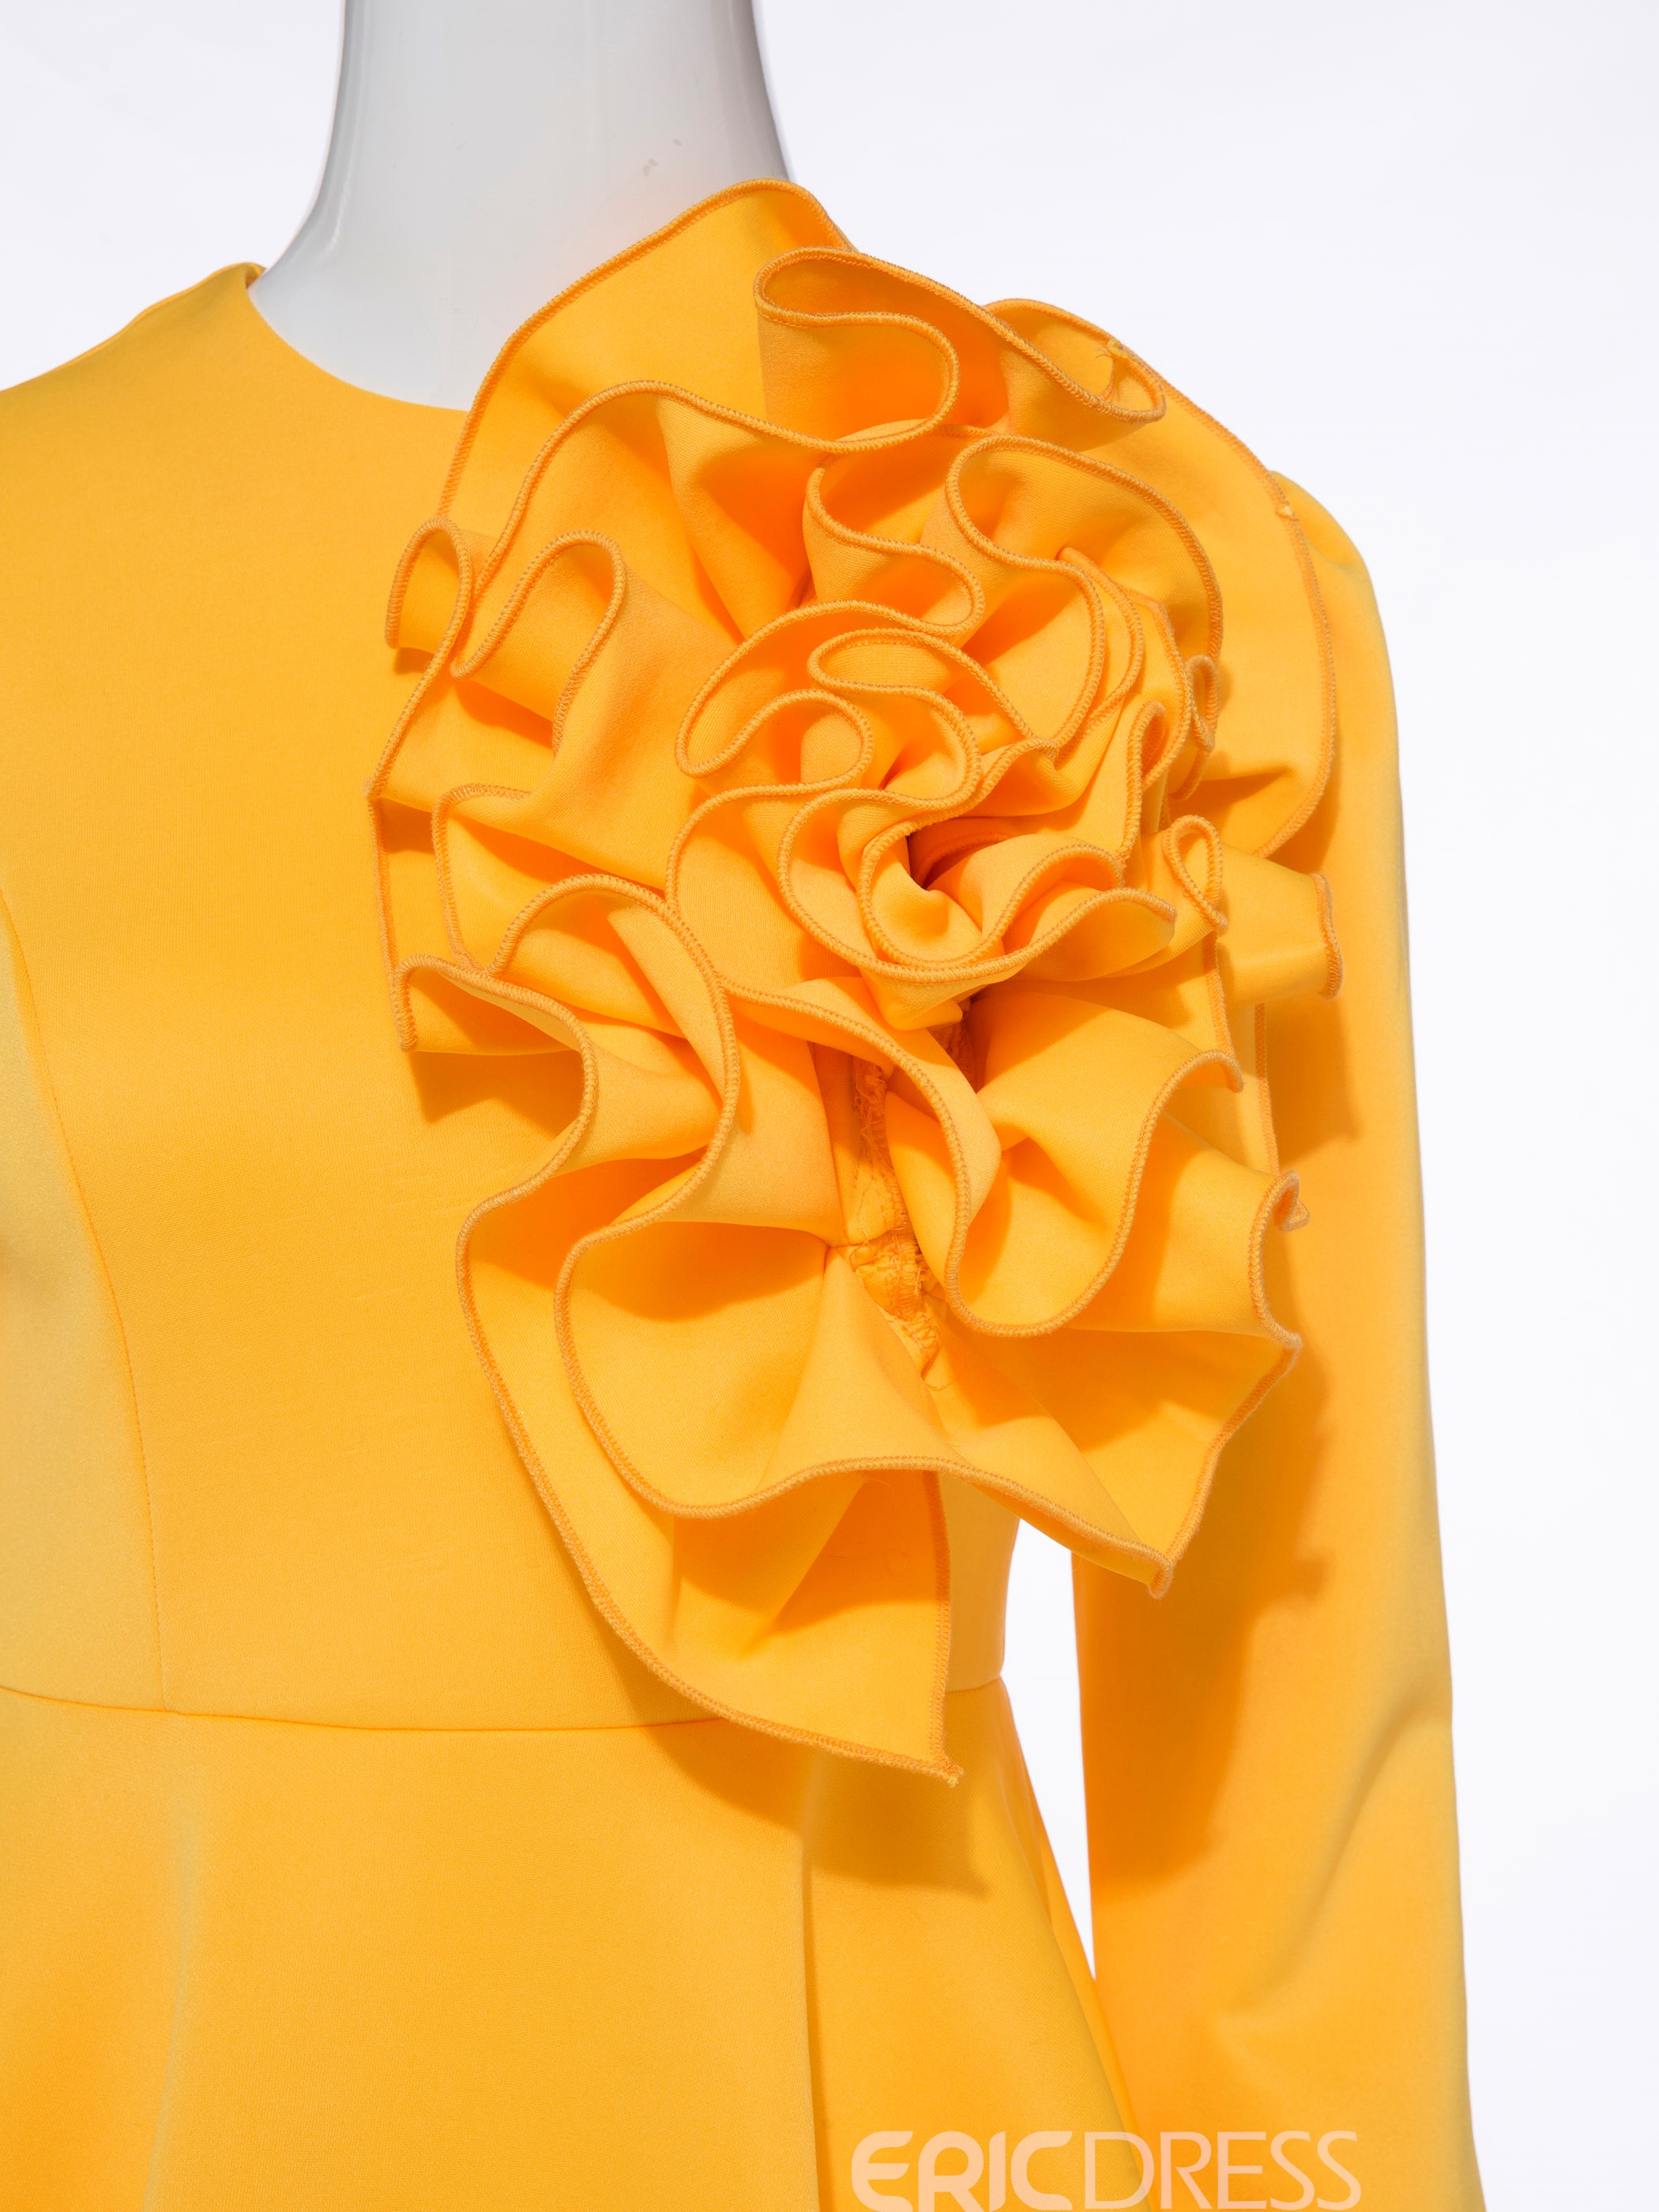 Women's Clothing Yellow Peplum Ruffles